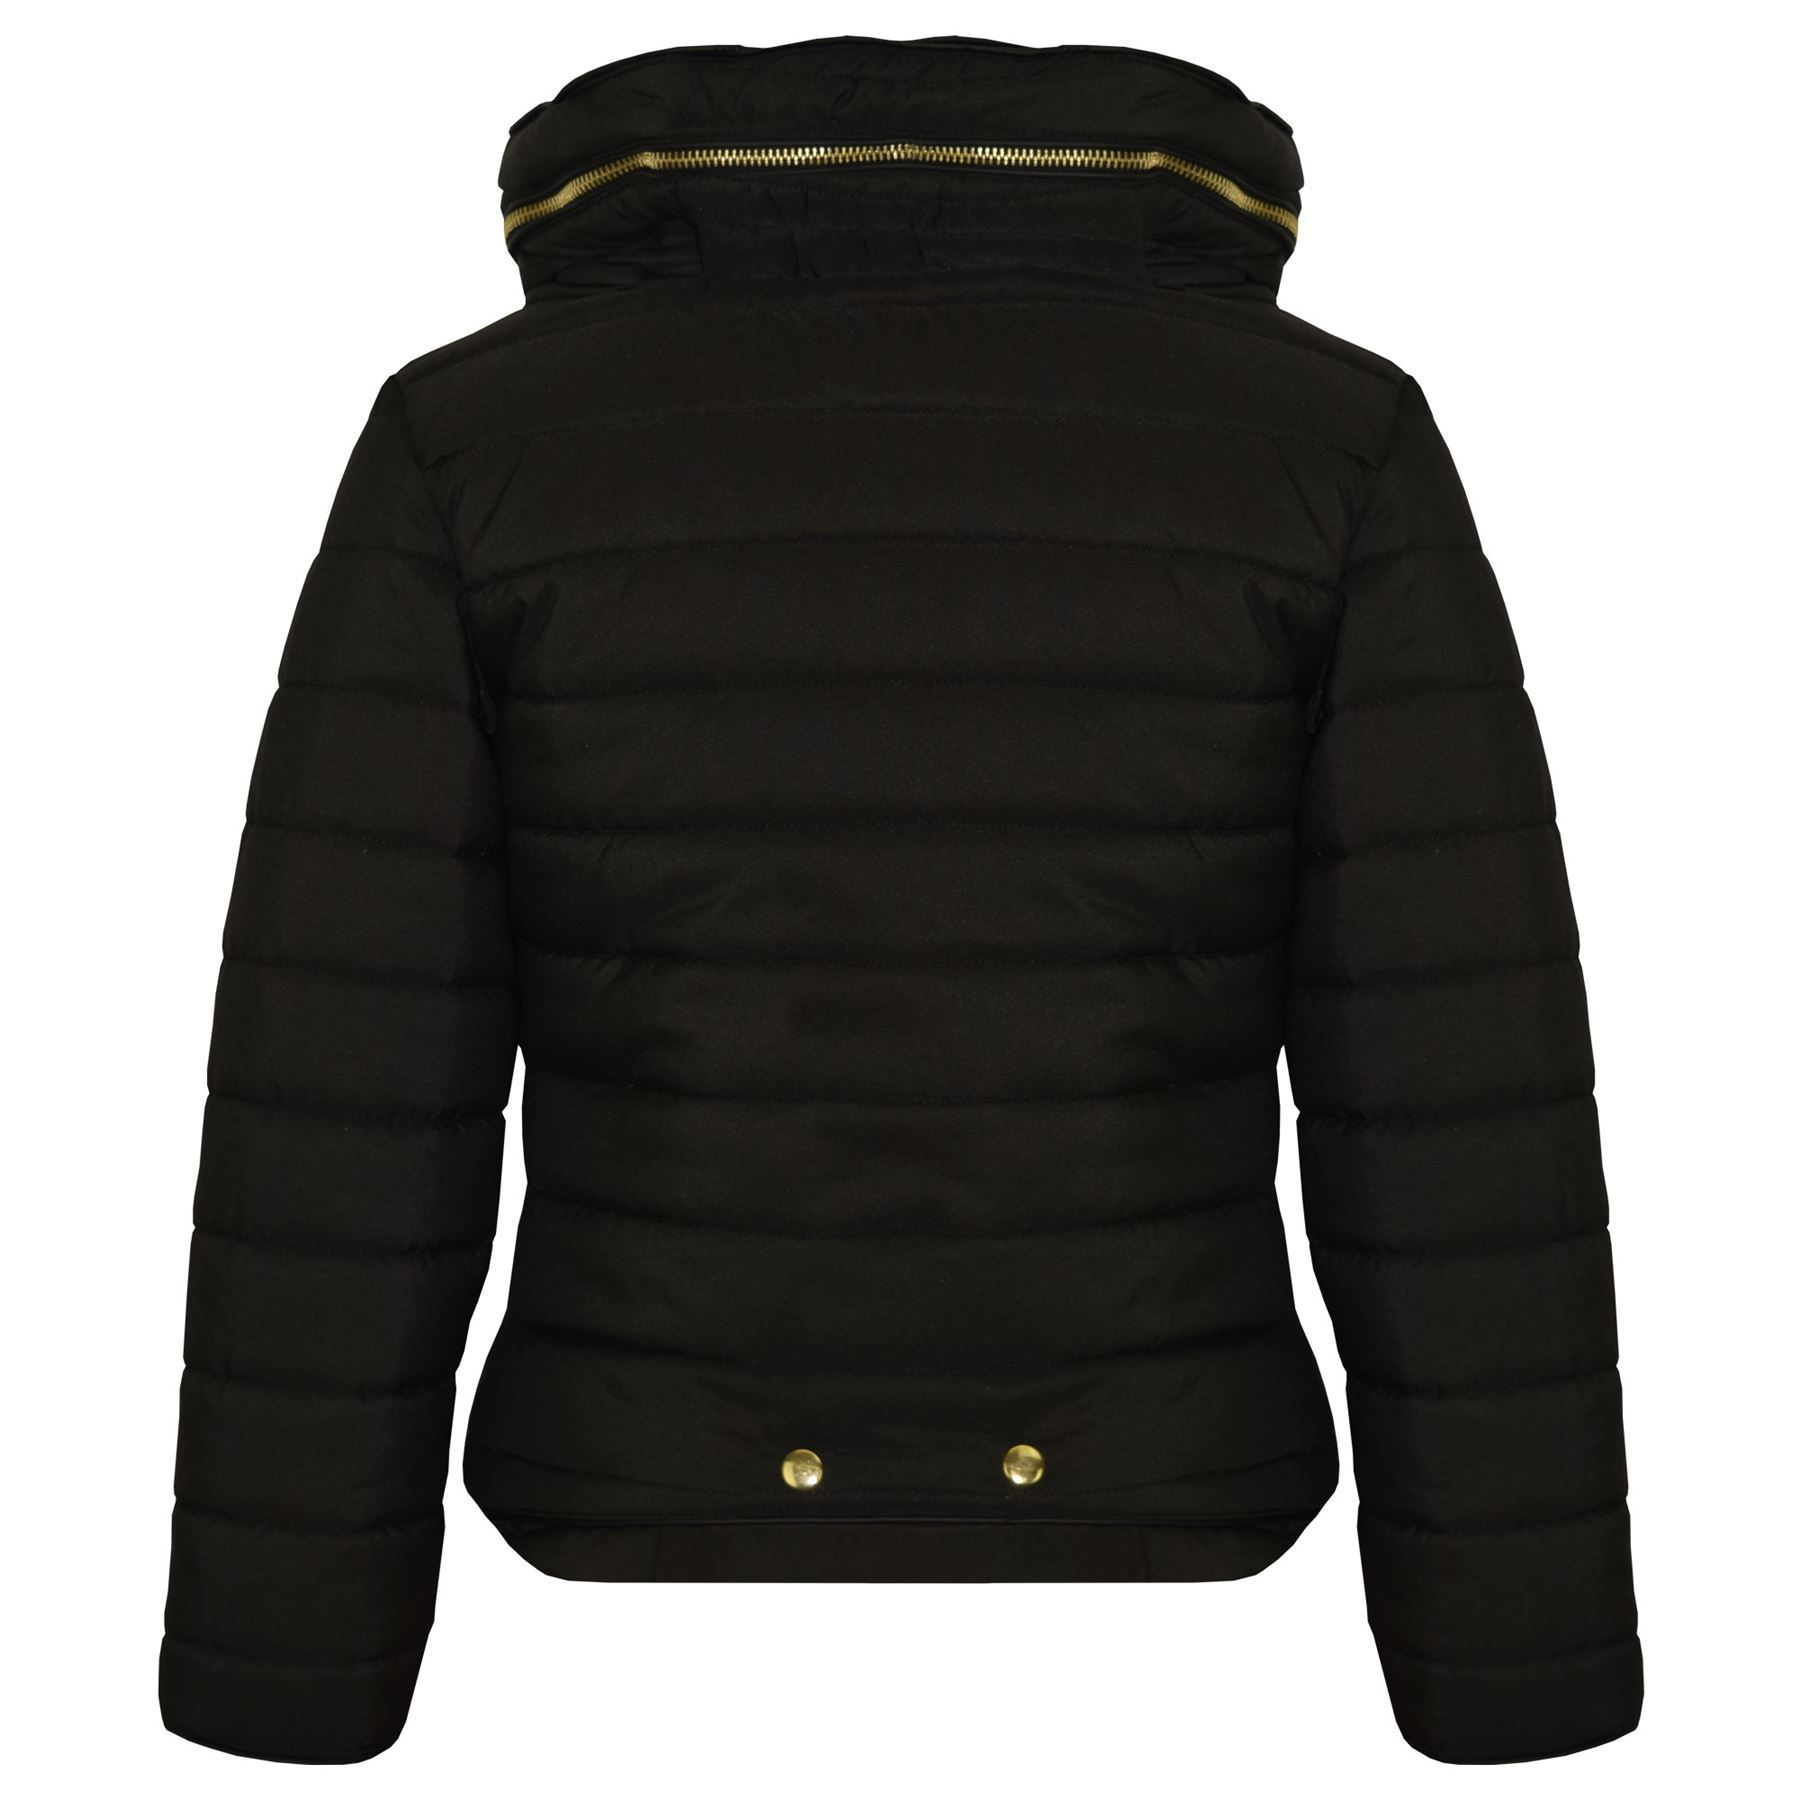 77f576074b66 Girls Jacket Kids Padded Black Puffer Bubble Fur Collar Back To ...